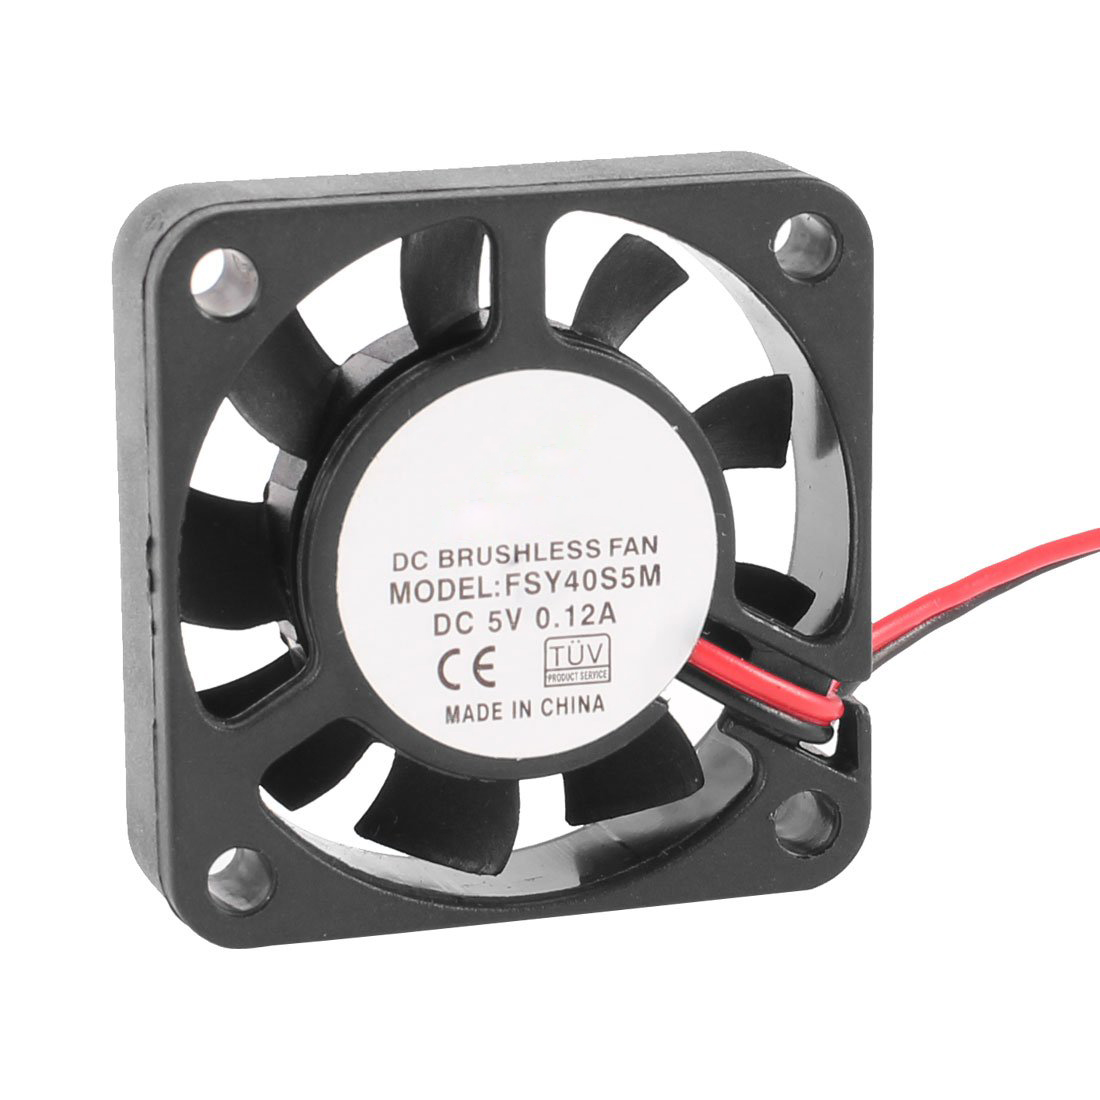 PROMOTION! 40mm X 10mm 0.12A 2Pin 5V DC Brushless Sleeve Bearing Cooling Fan